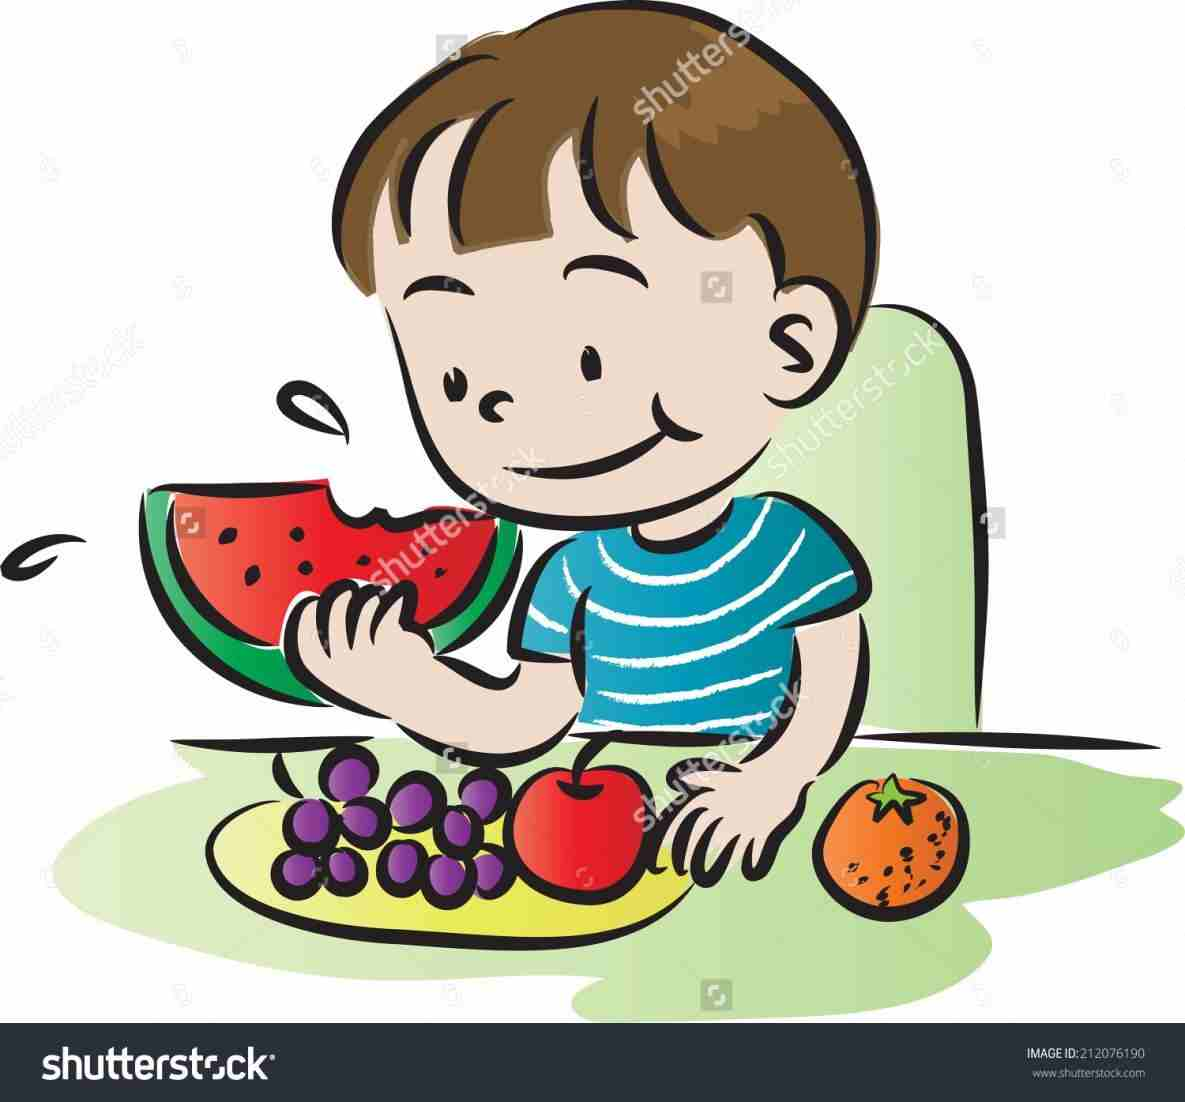 Child eating vegetables clipart black and white image transparent stock Clipart stationrhclipartstationcom child Child Eating Vegetables ... image transparent stock